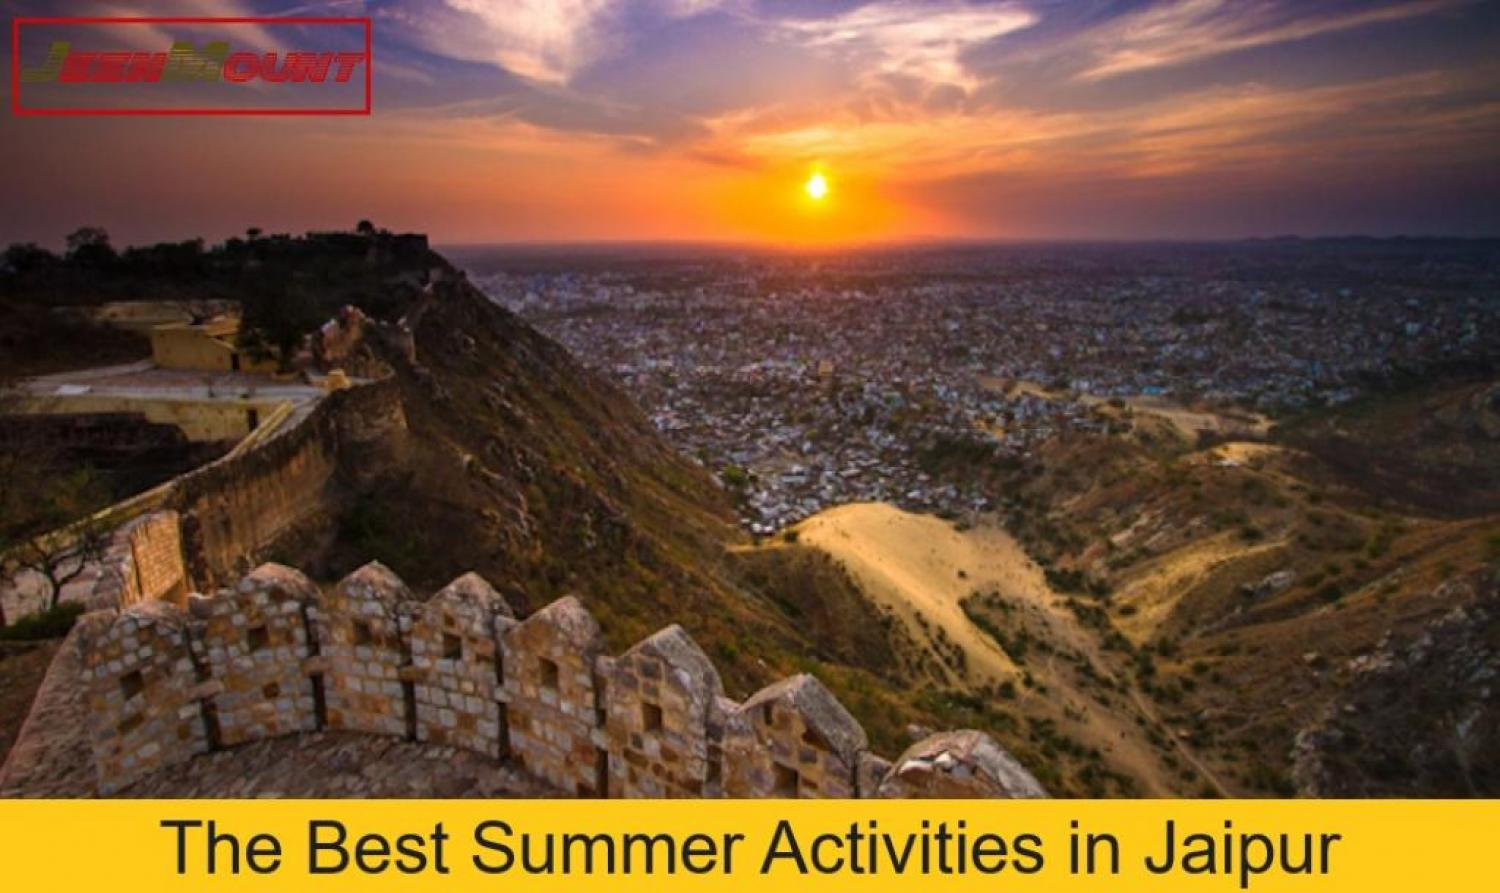 The Best Summer Activities in Jaipur